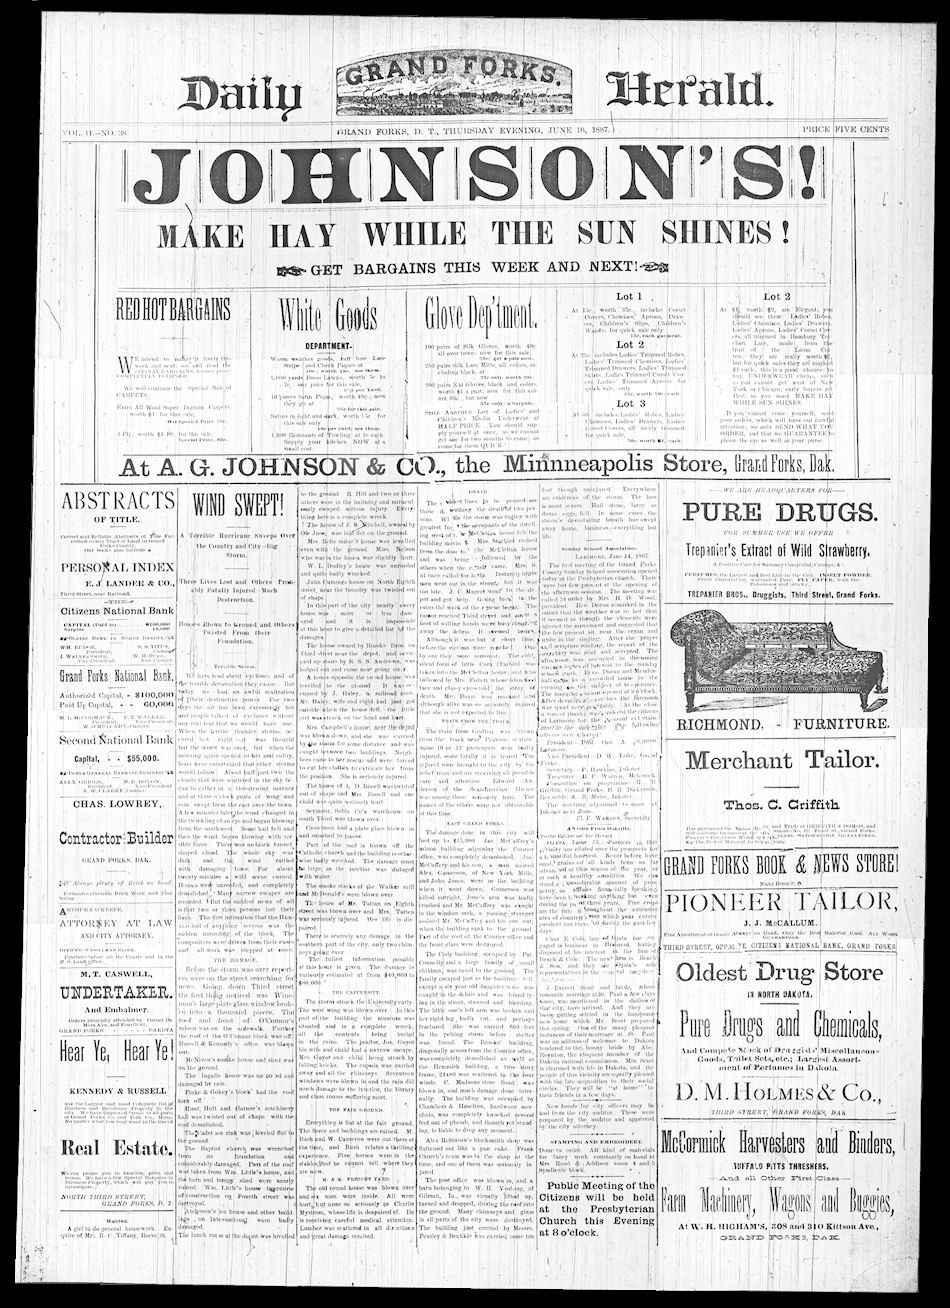 Grand Forks Daily Herald Front Page, June 16, 1887